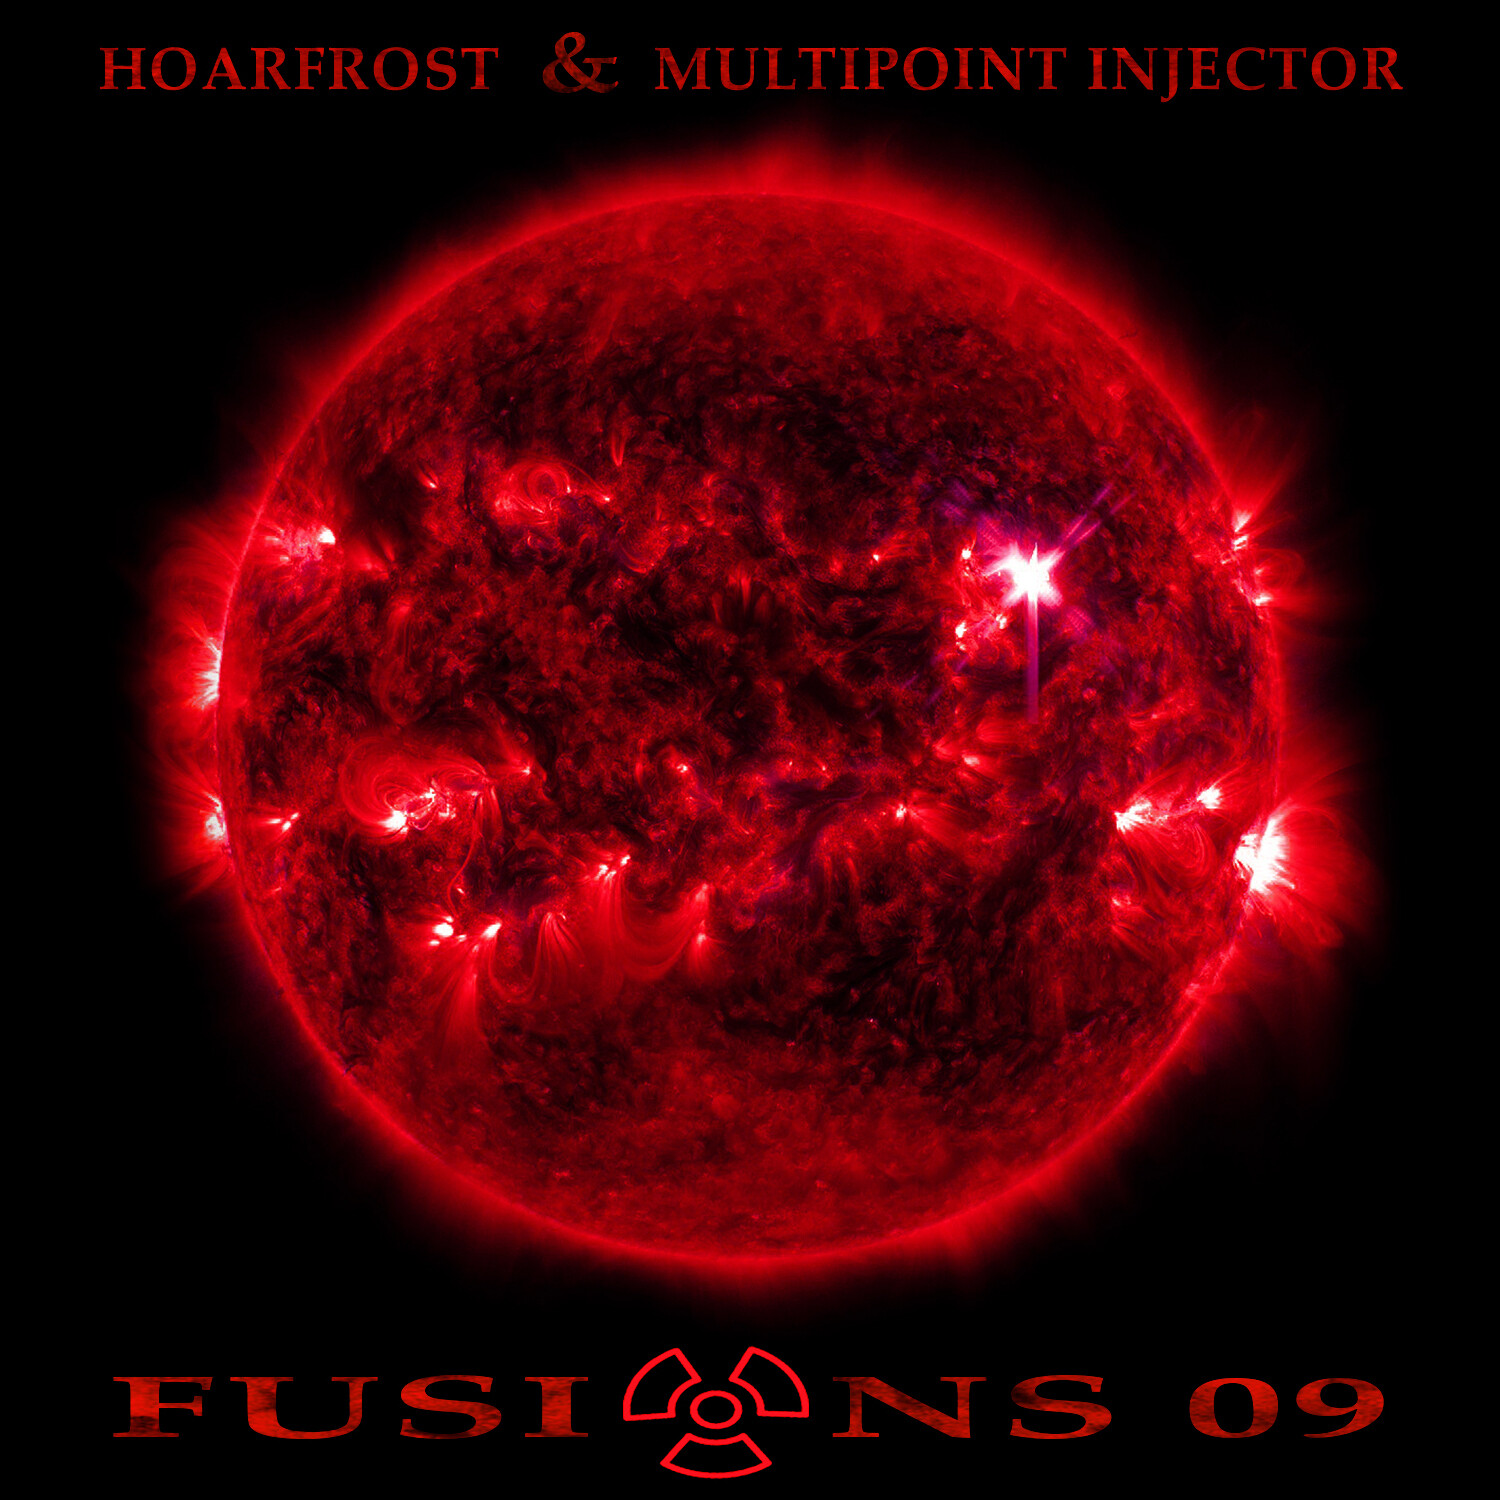 """Hoarfrost & Multipoint Injector """"Fusions 09"""""""